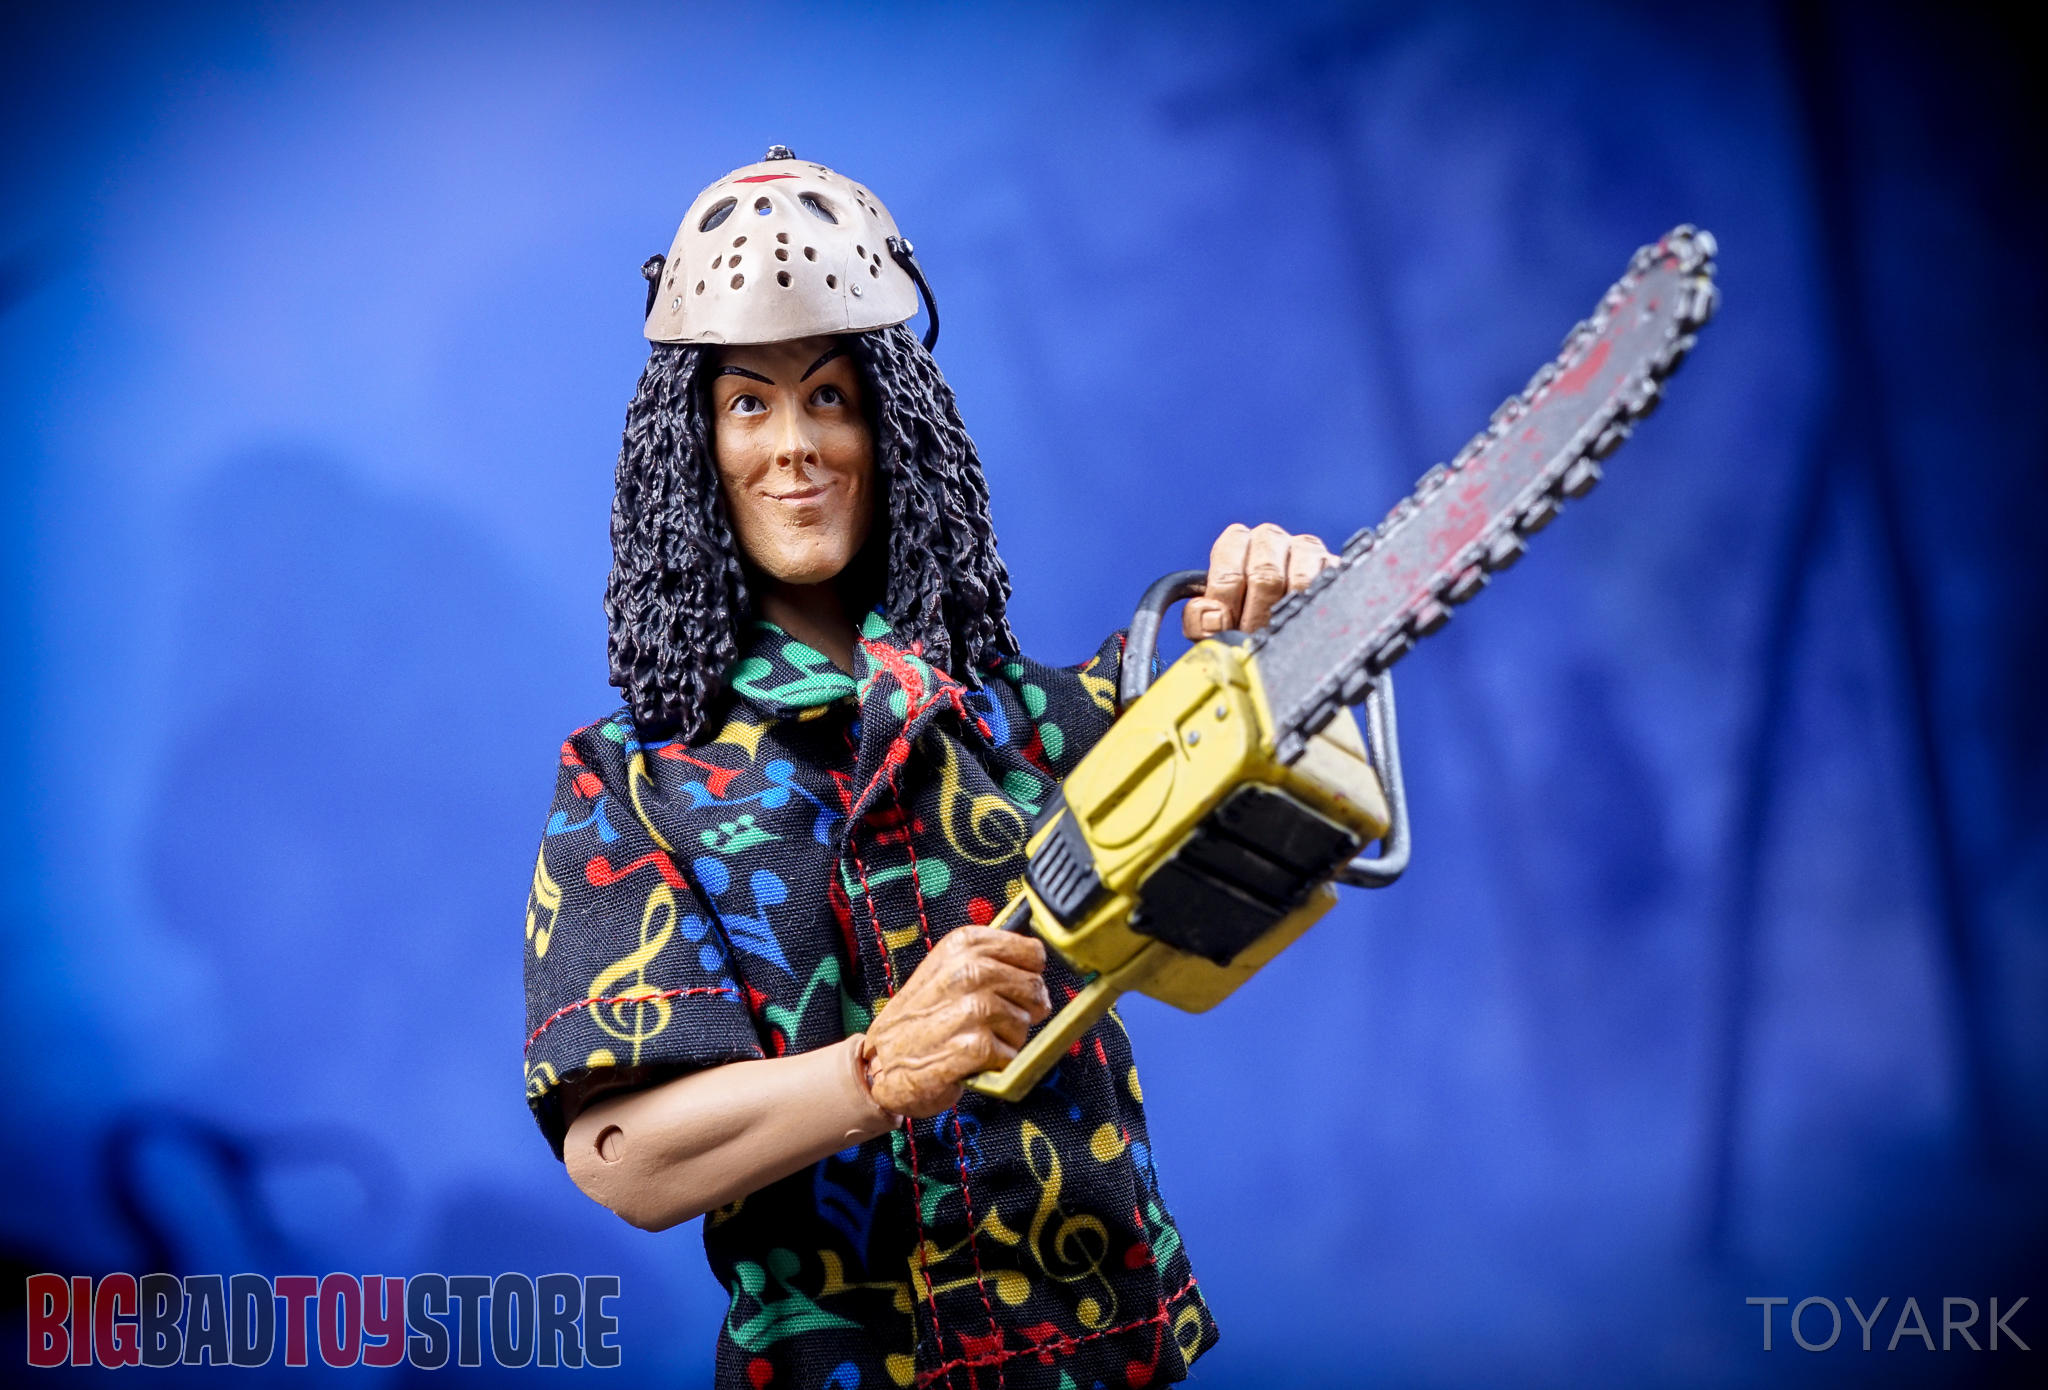 http://news.toyark.com/wp-content/uploads/sites/4/2016/06/NECA-Retro-Weird-Al-046.jpg